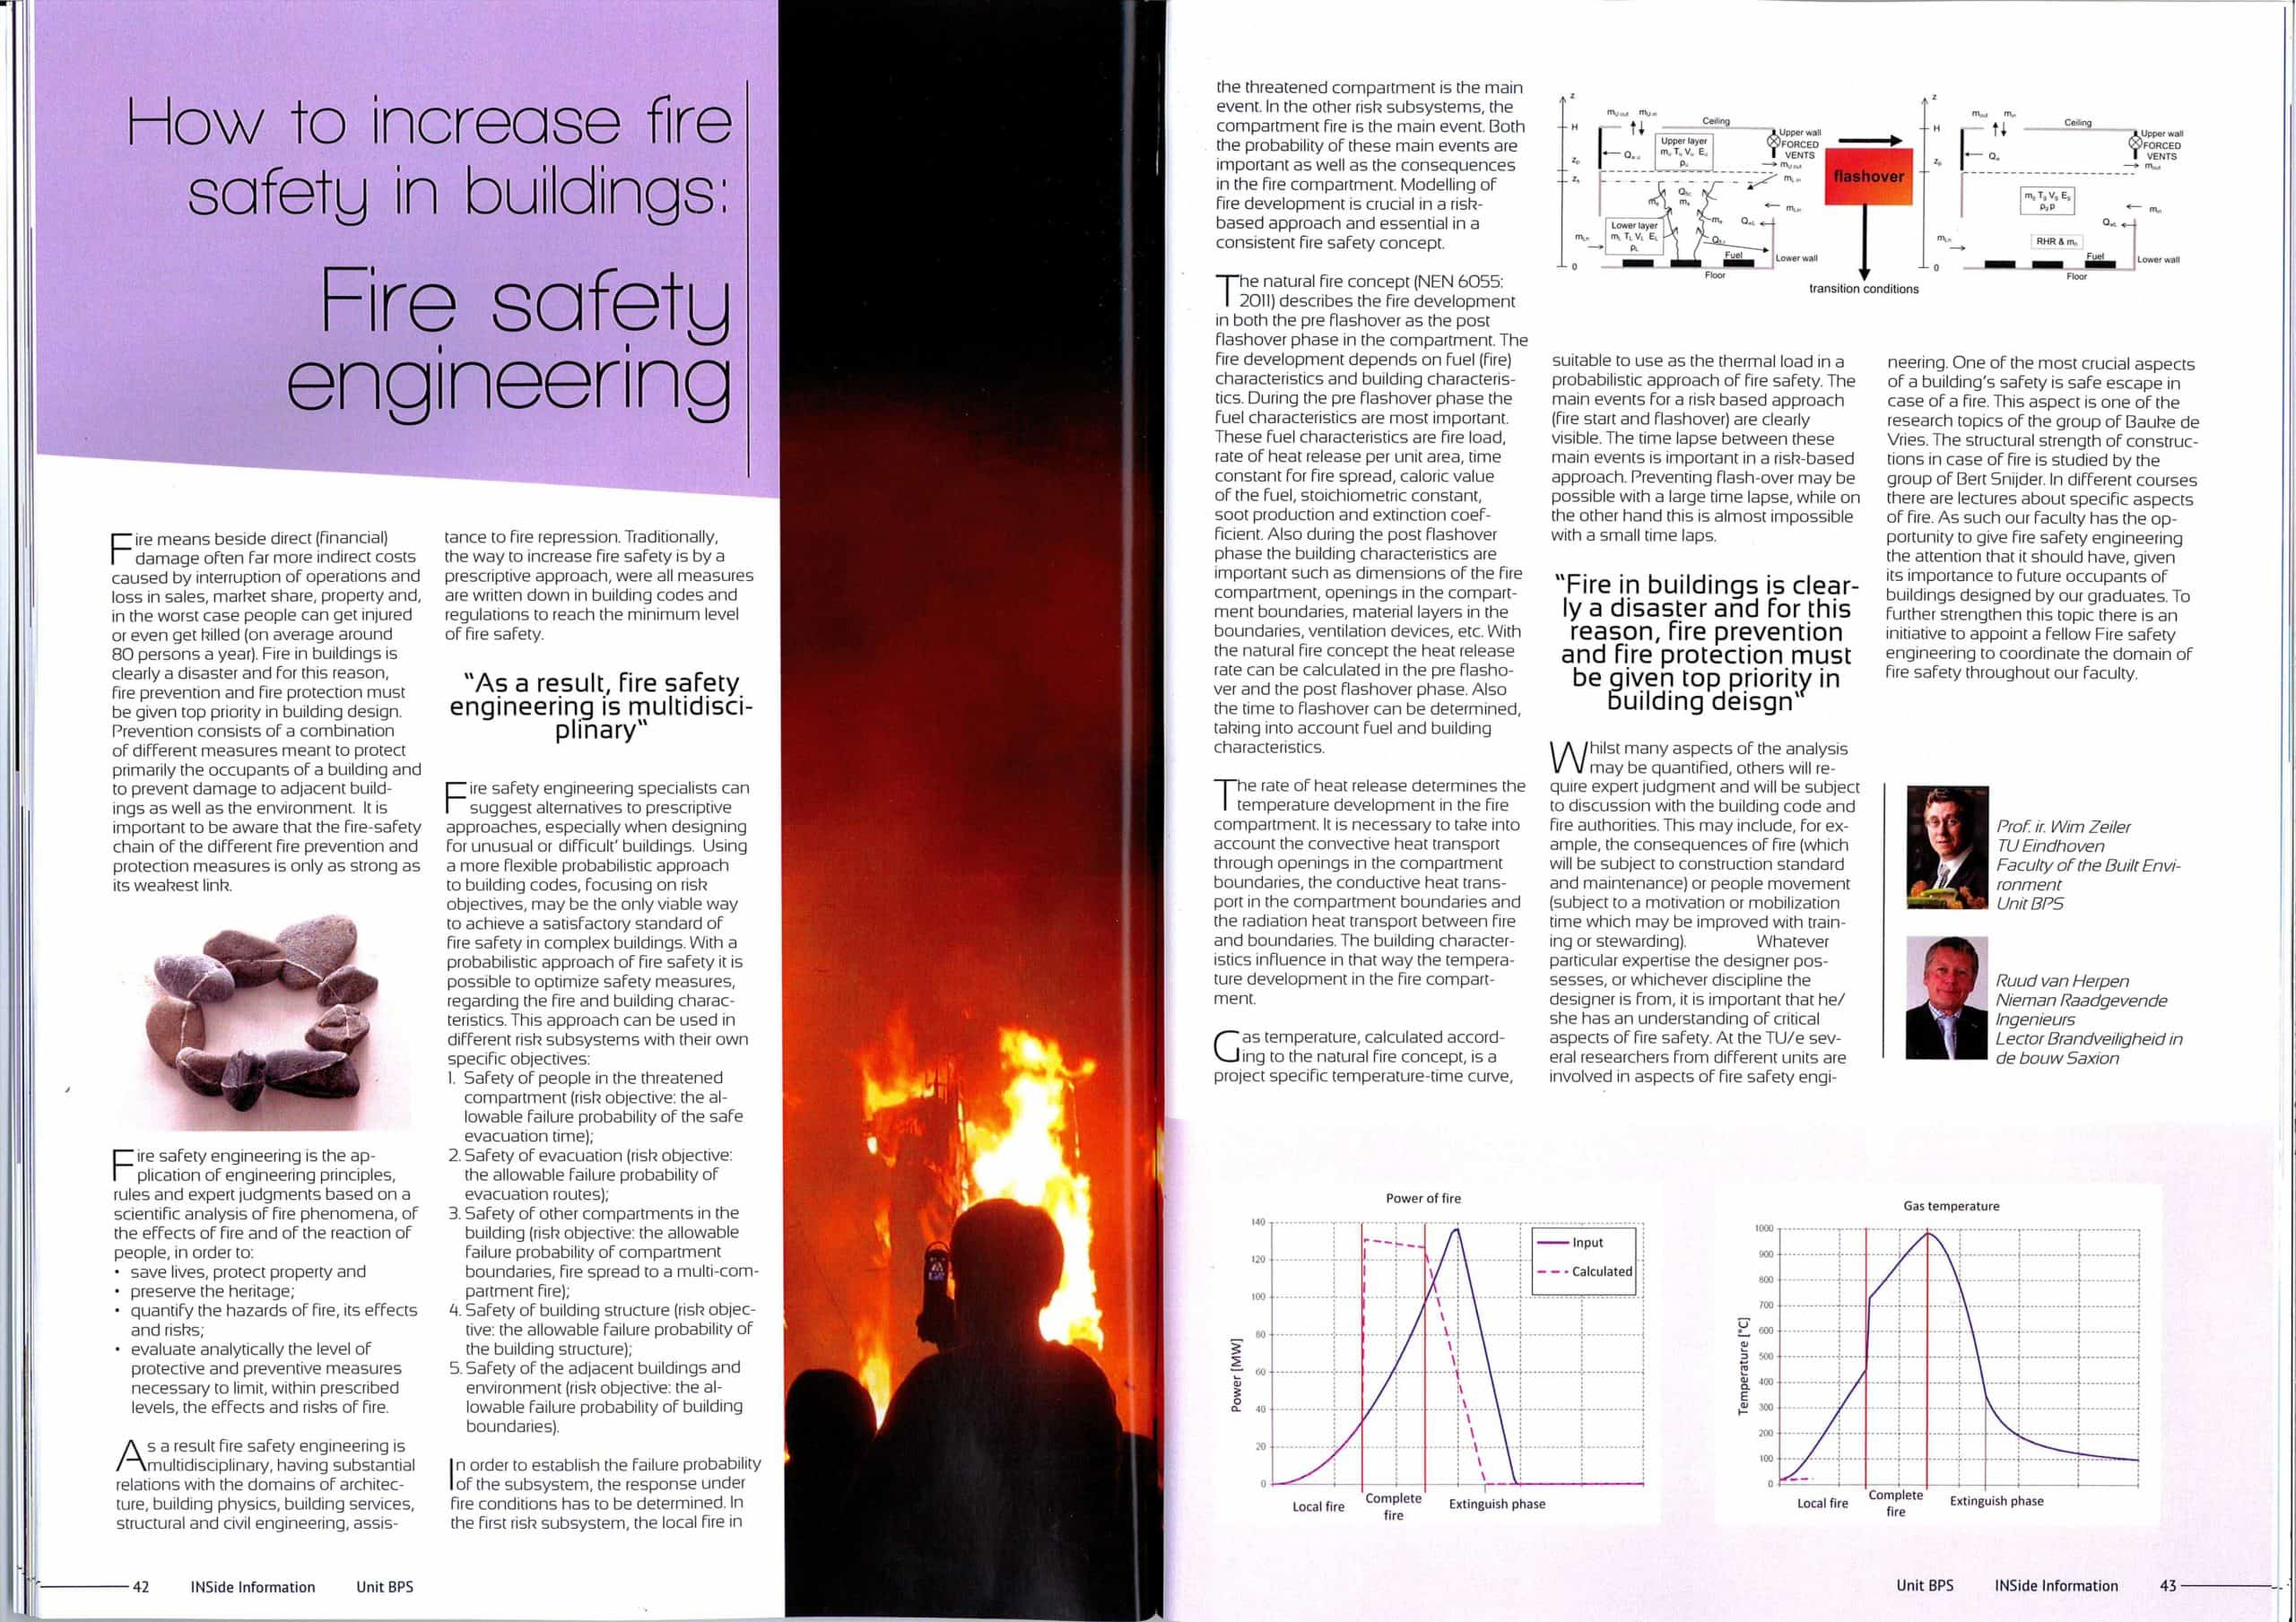 INSide information_2011-12_How to increase fire safety in buildings -  Fire Safety Engineering